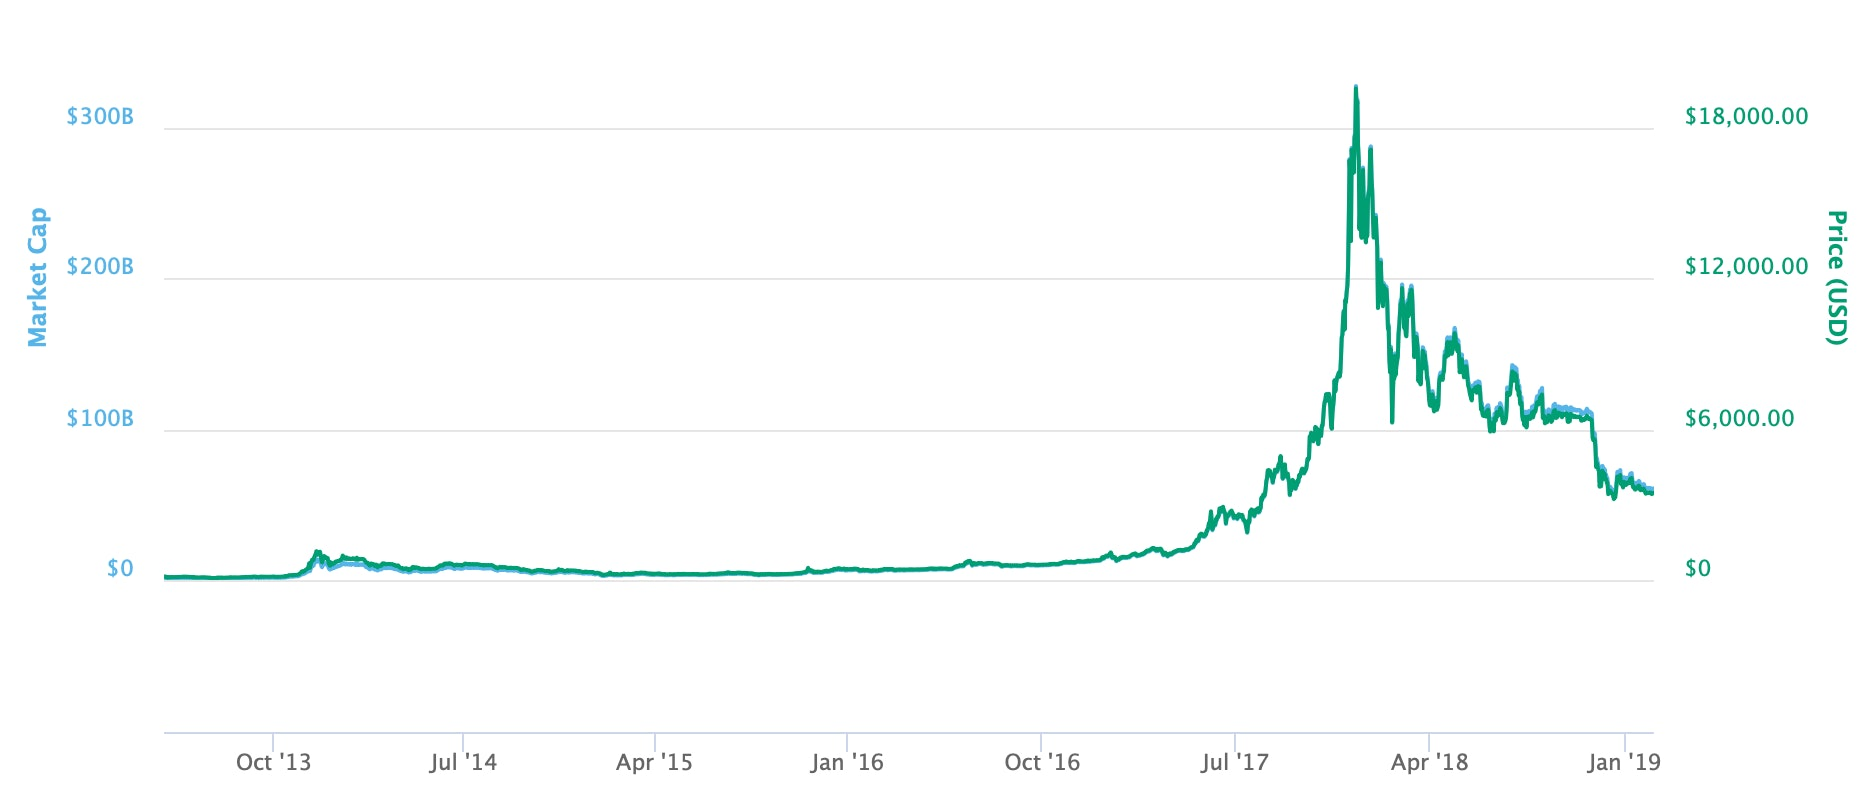 The price of one bitcoin from April 2013 to the present day.